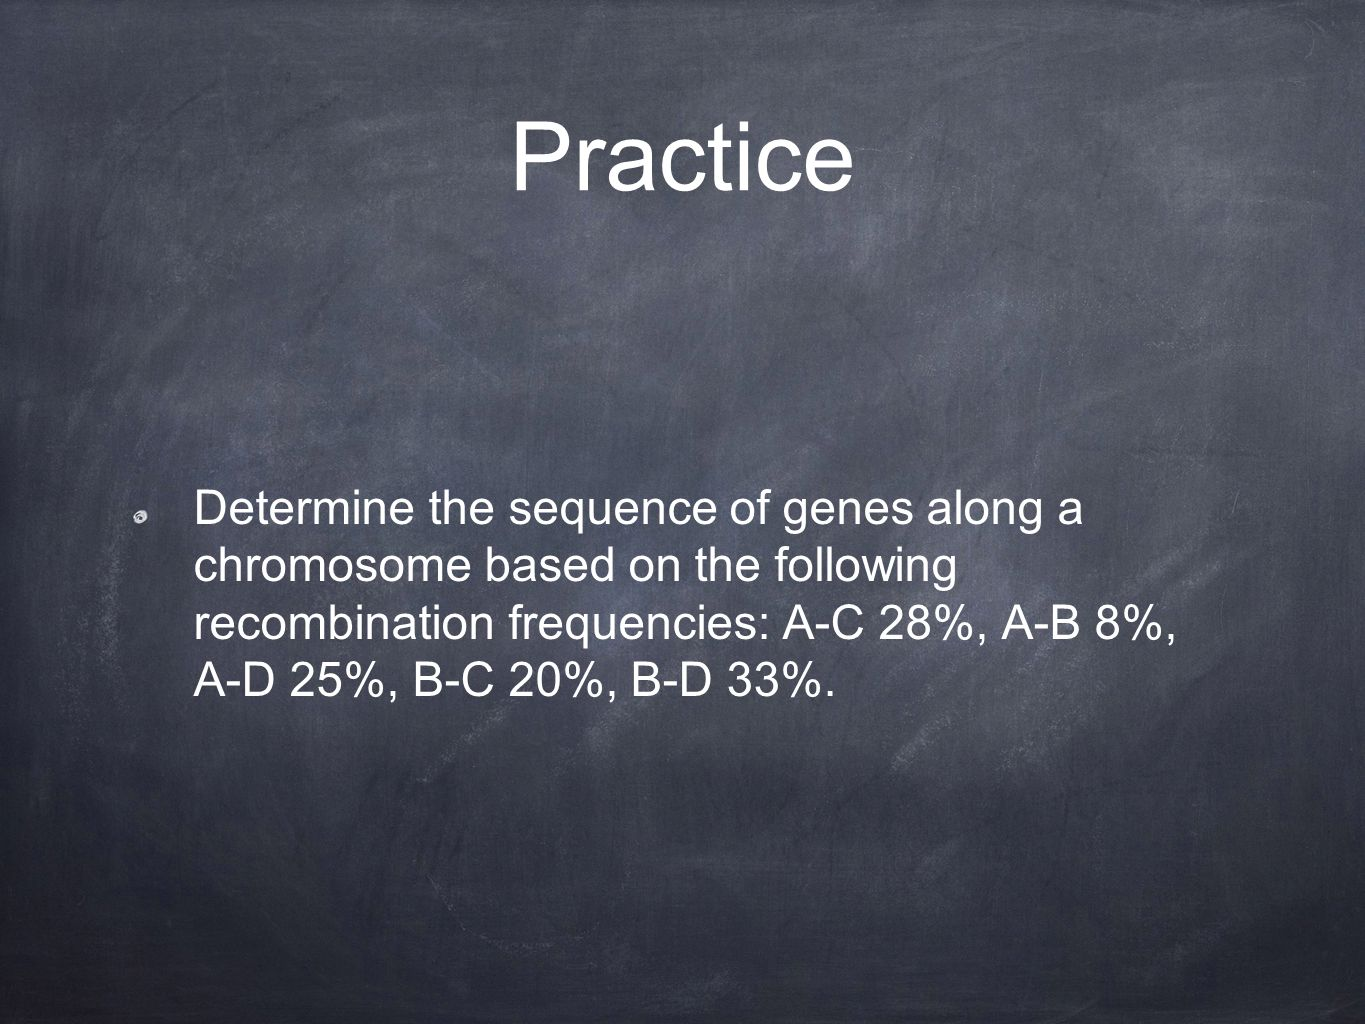 Practice Determine the sequence of genes along a chromosome based on the following recombination frequencies: A-C 28%, A-B 8%, A-D 25%, B-C 20%, B-D 33%.